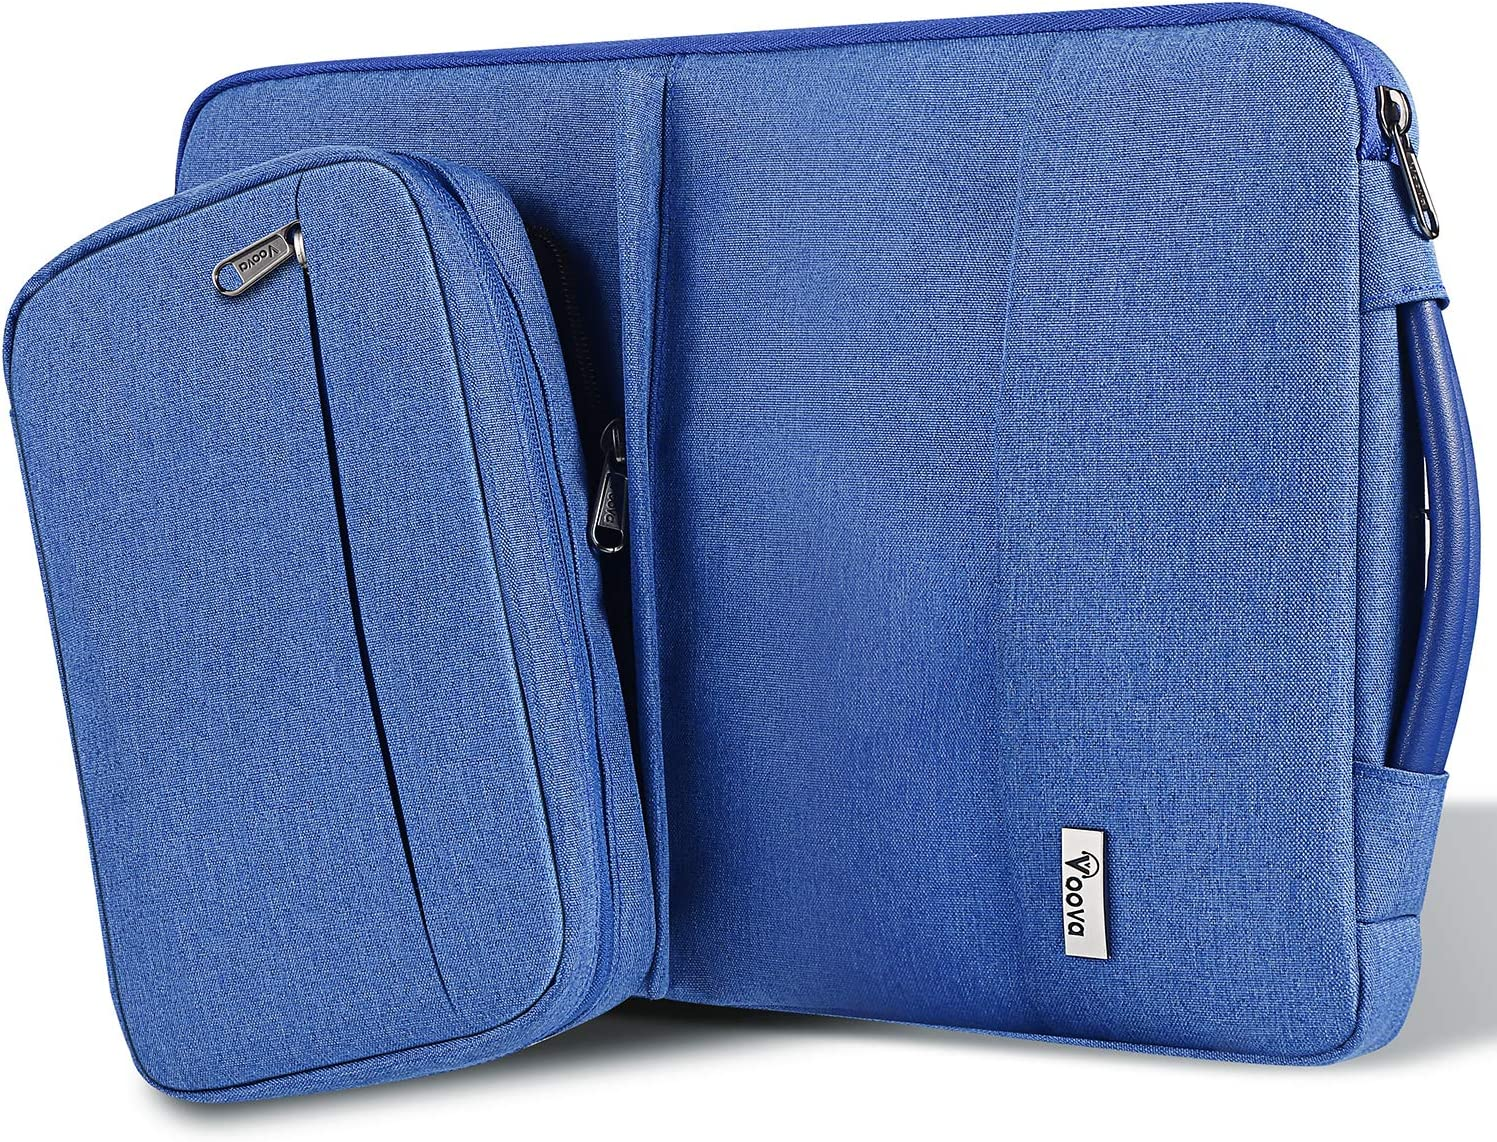 Voova 14-15.6 Inch Laptop Sleeve Cover Case, Upgrade Smart Computer Hand Bag with Detachable Accessory Pocket Compatible with MacBook Pro 15 16, Surface Book 2/Laptop 3 15 Chromebook, Waterproof, Blue